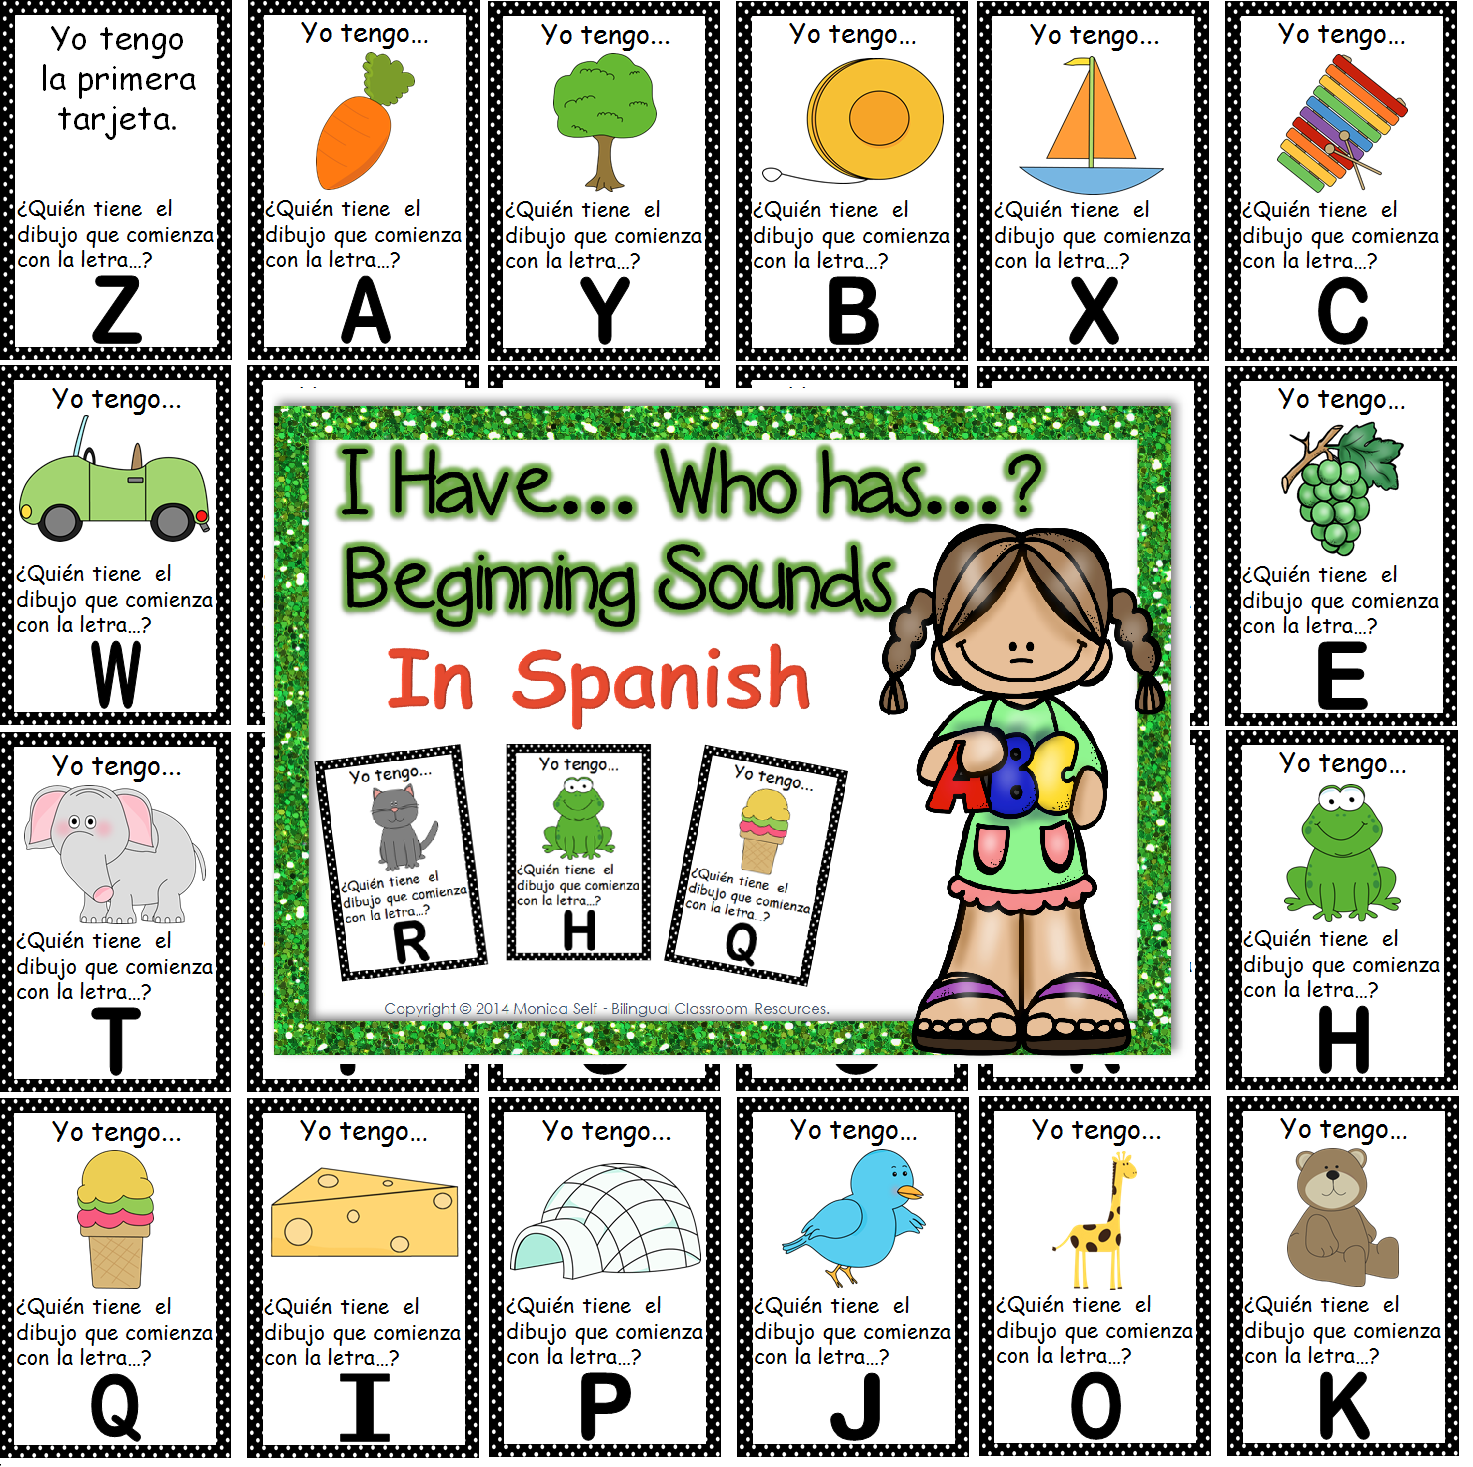 http://www.teacherspayteachers.com/Product/I-Have-Who-Has-Beginning-Sounds-in-Spanish-1297204